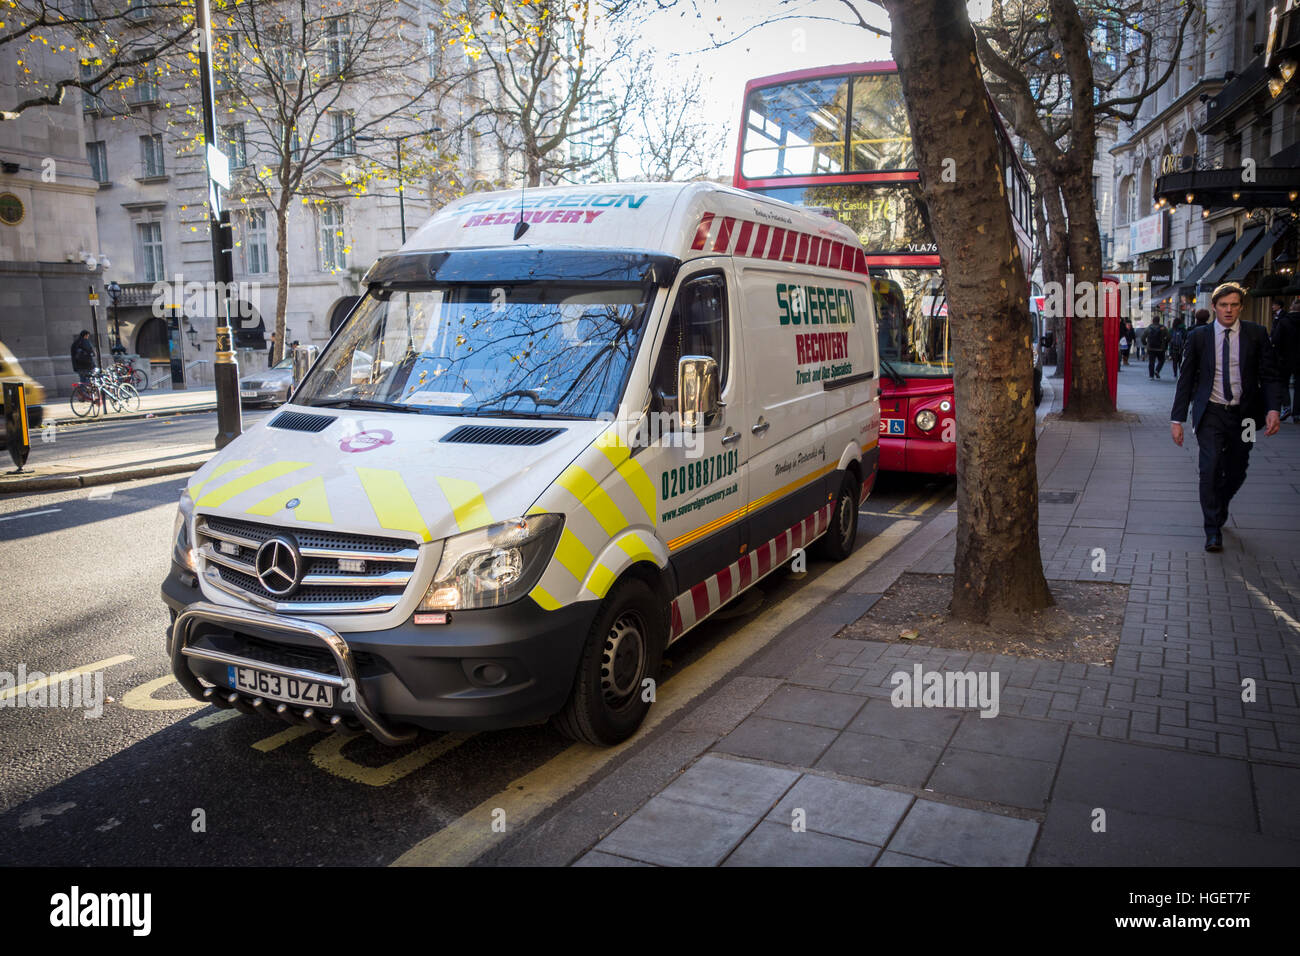 Sovereign Recovery van fixing a broken down red London bus in Covent Garden, London, UK - Stock Image